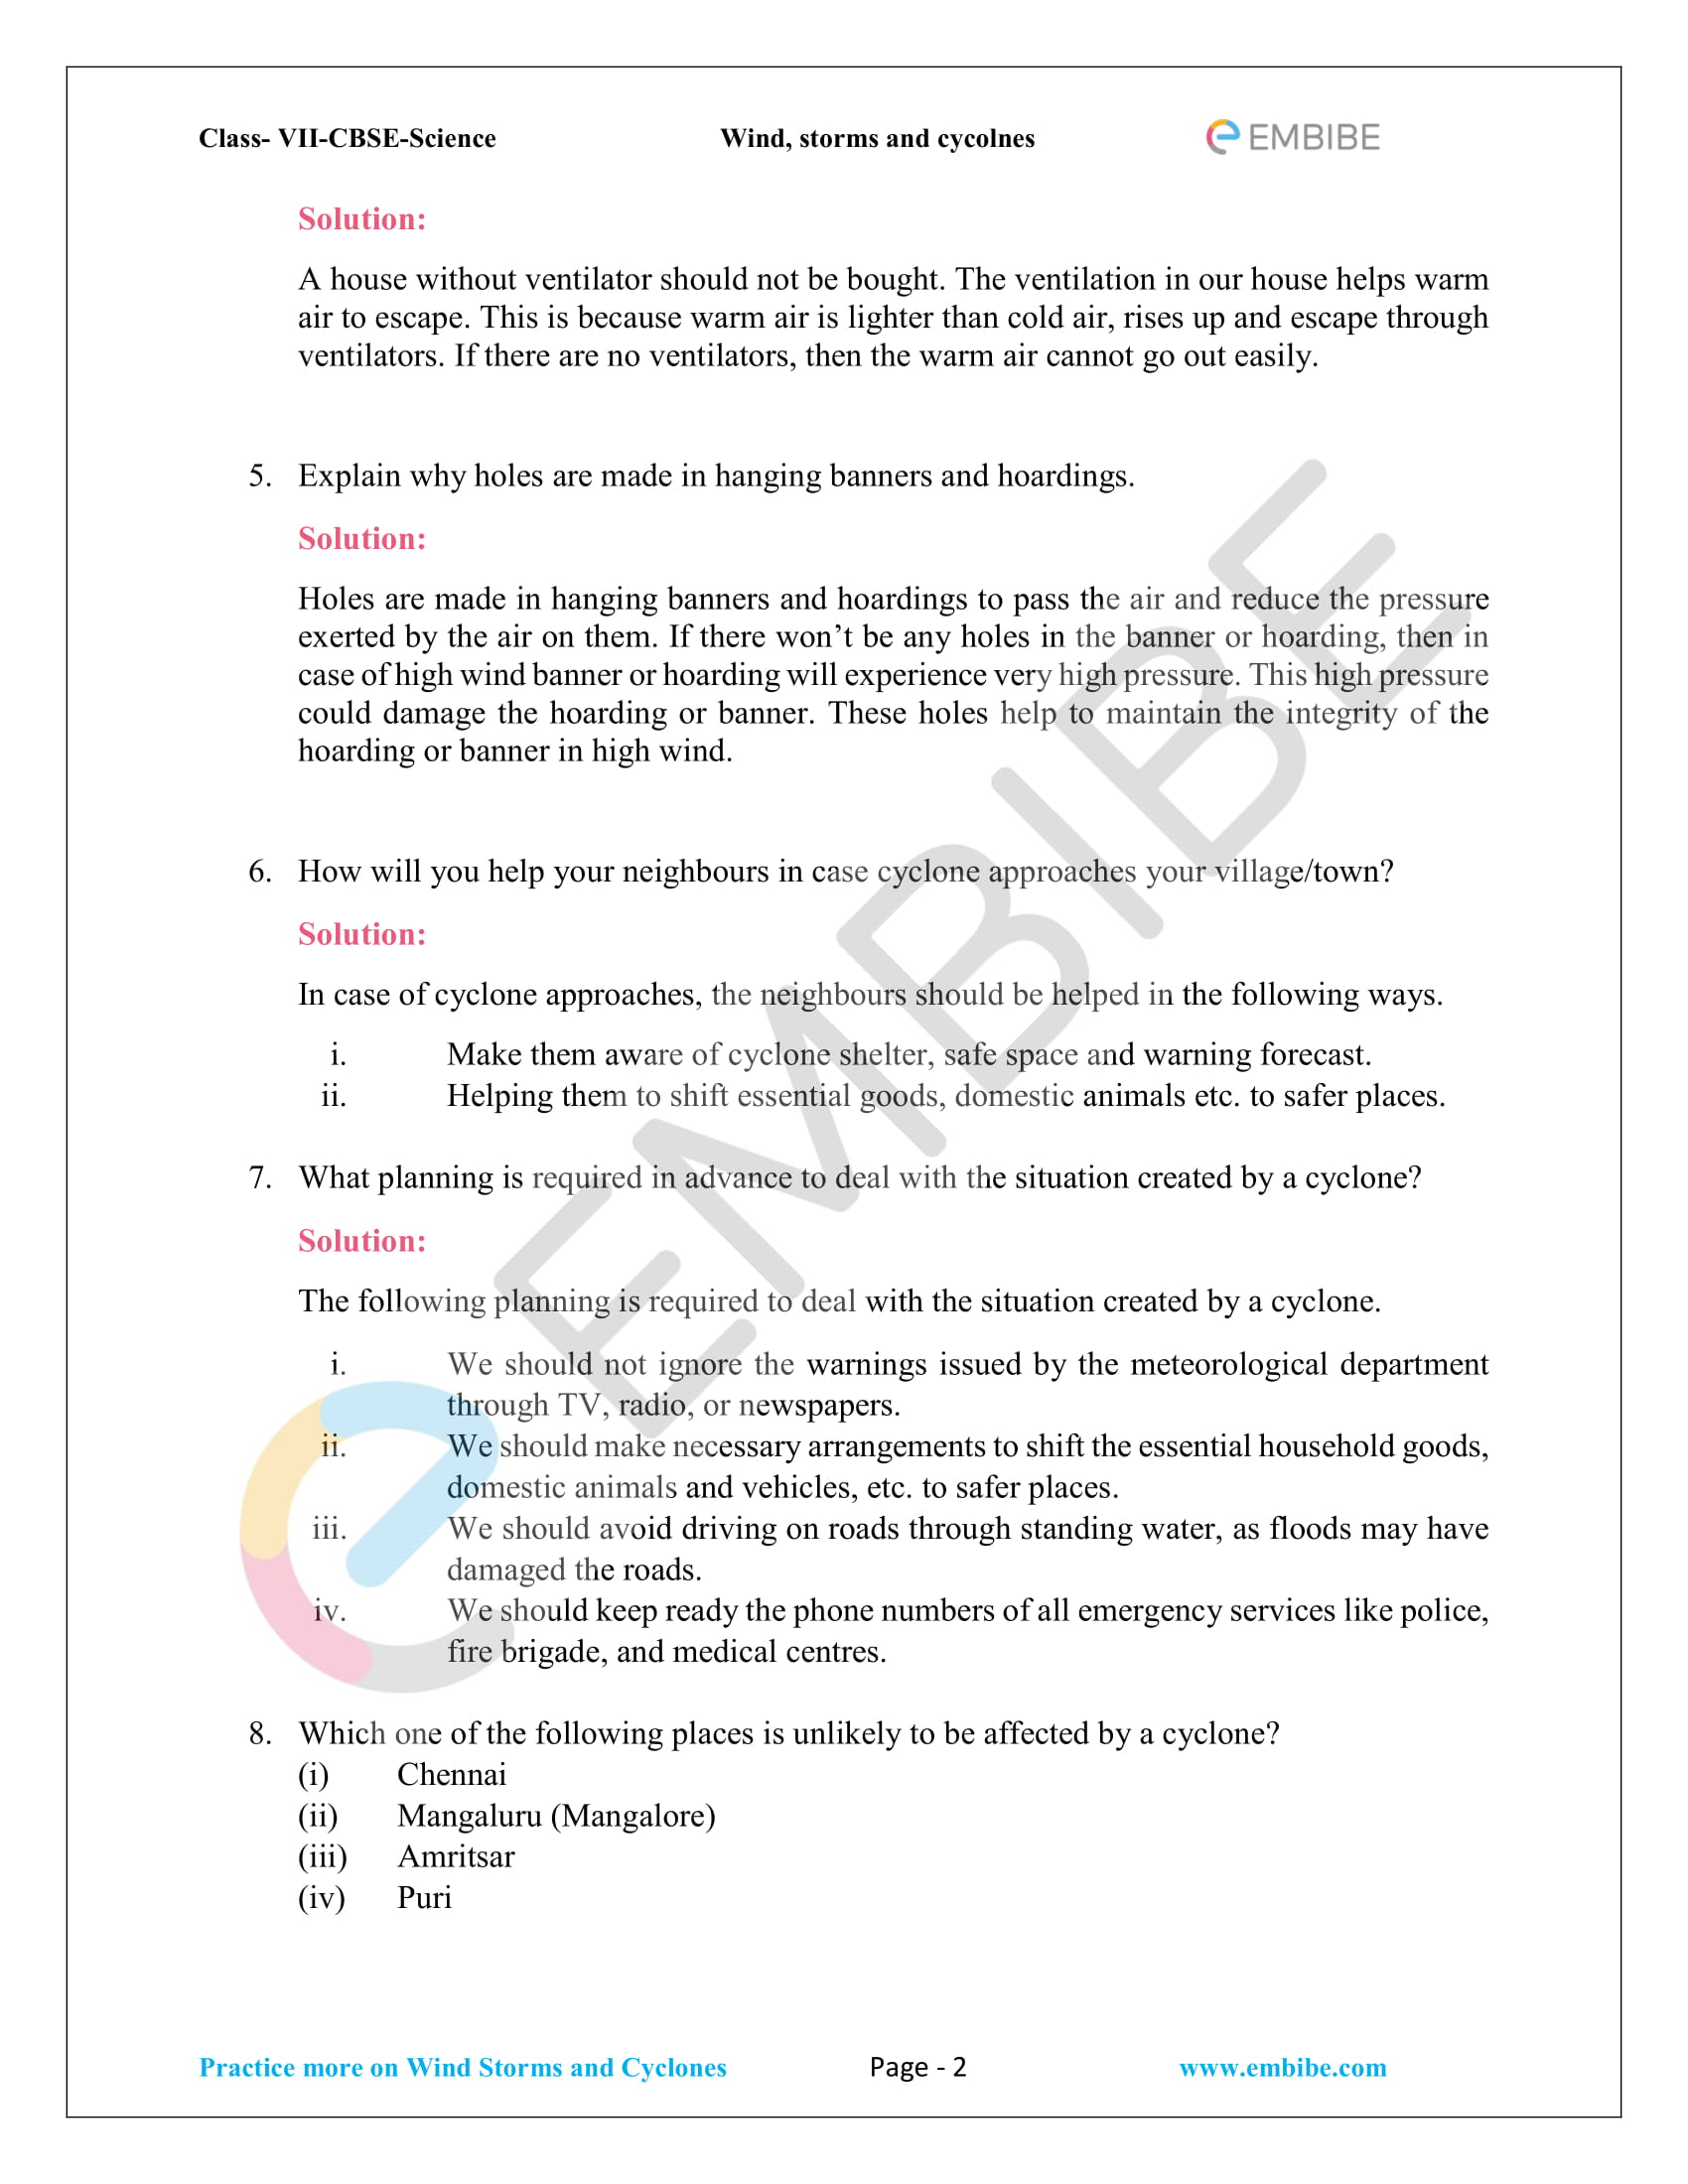 BSE NCERT Solutions For Class 7 Science Chapter 8 - Winds, storms, and cyclones - 2